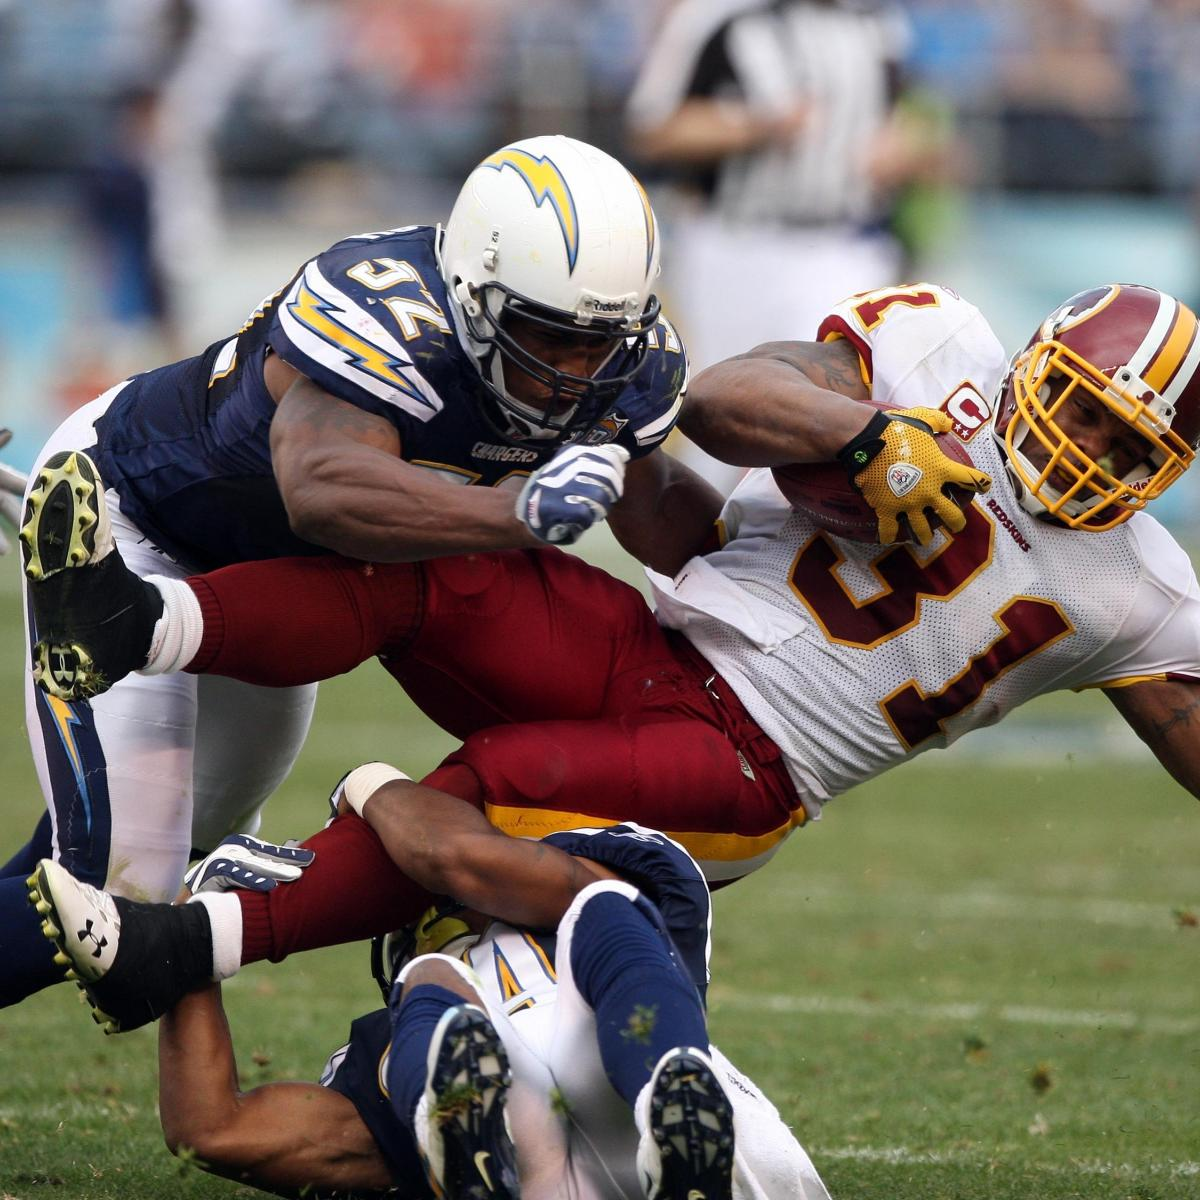 San Diego Chargers Bye Week: Washington Redskins: What You Need To Know Heading Into